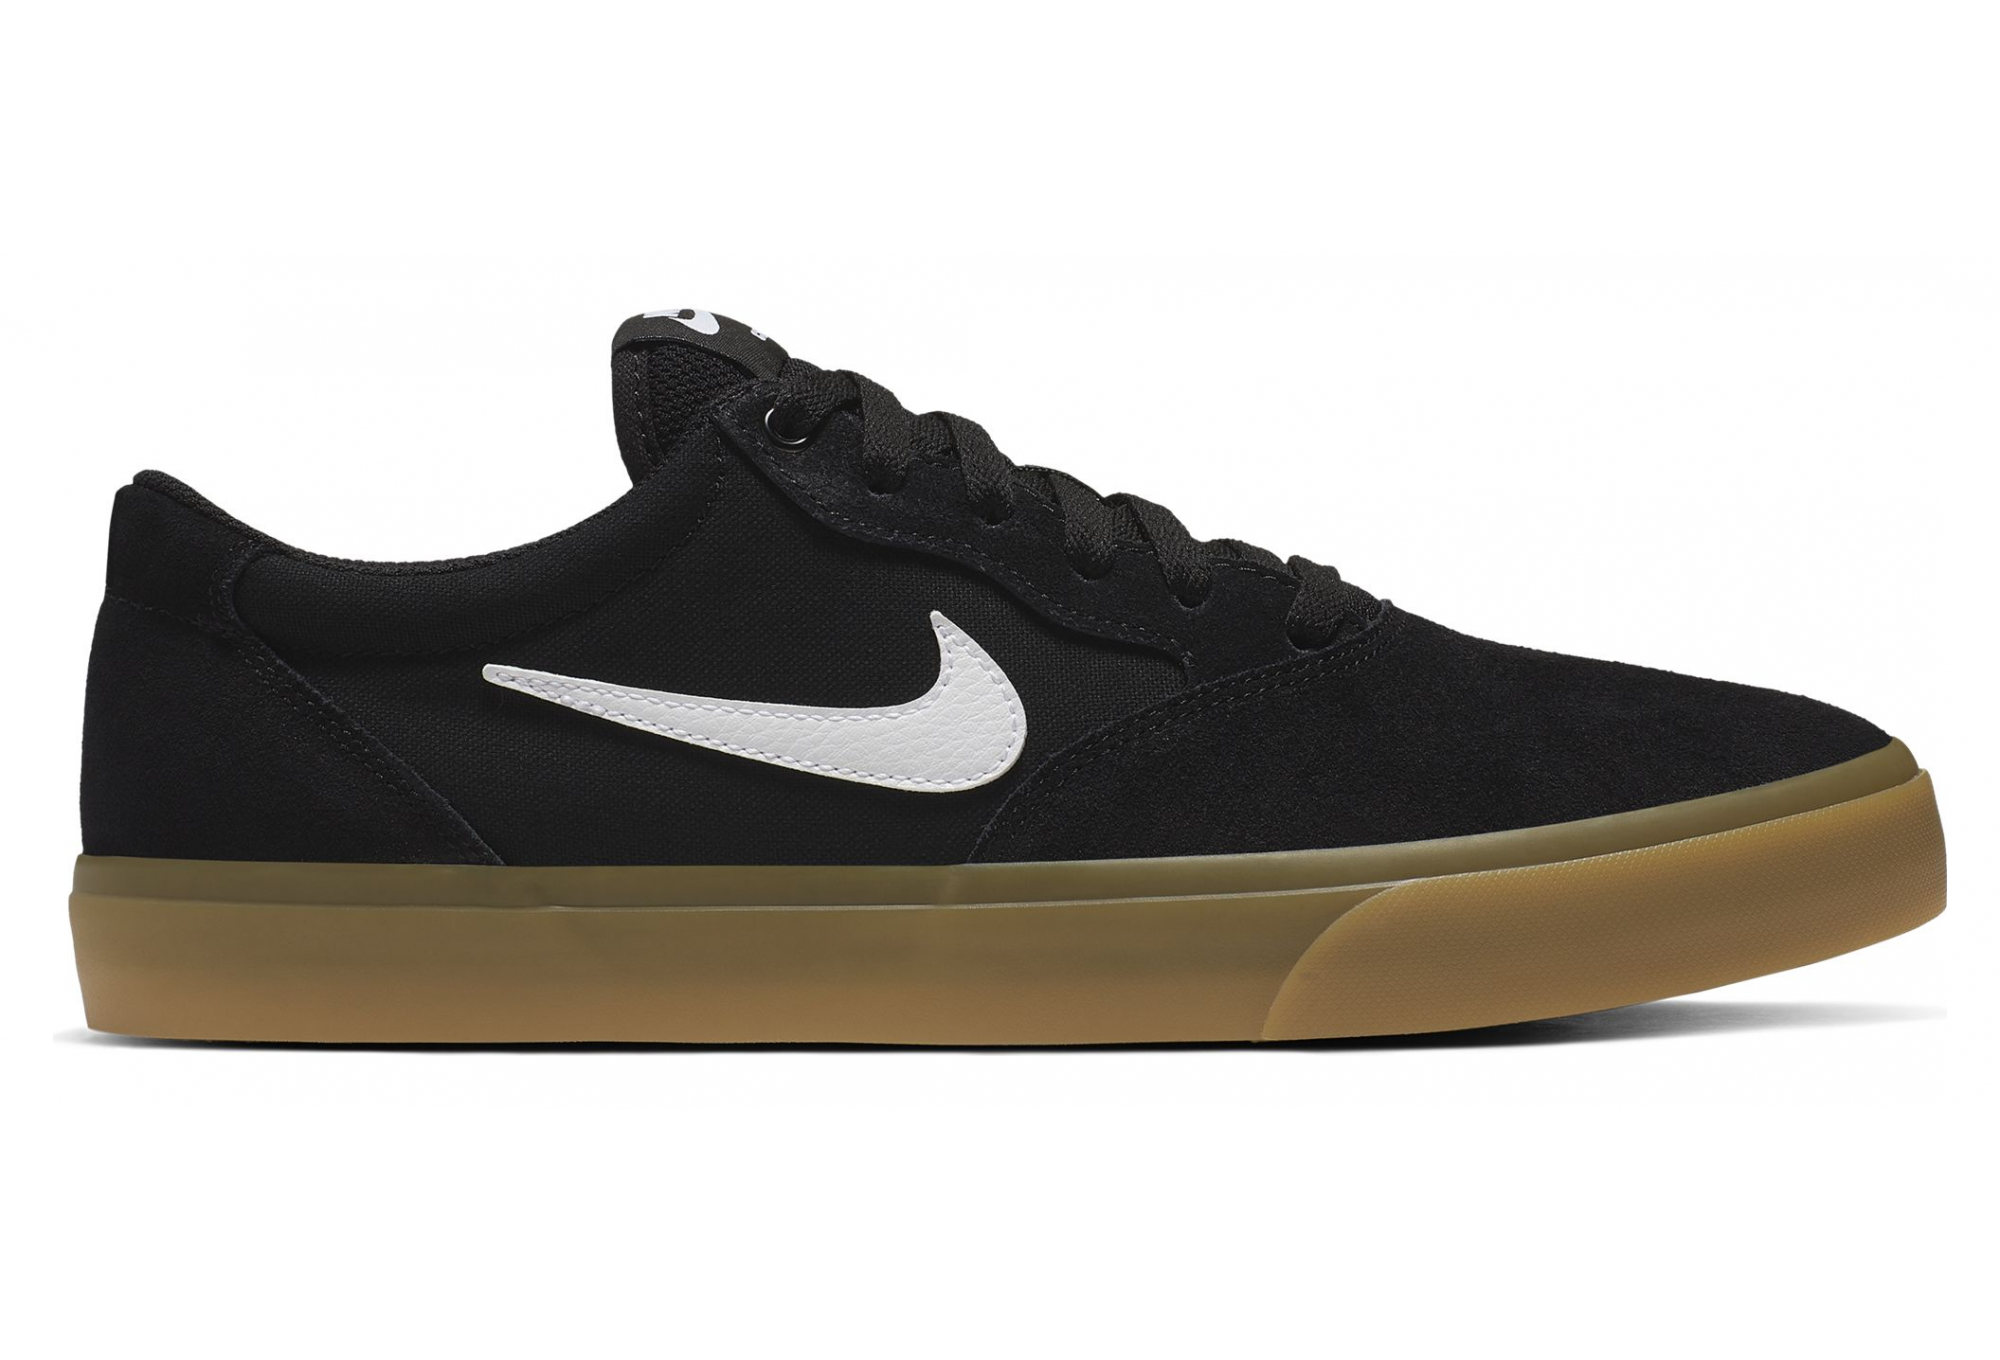 nike sb chron zapatillas skate